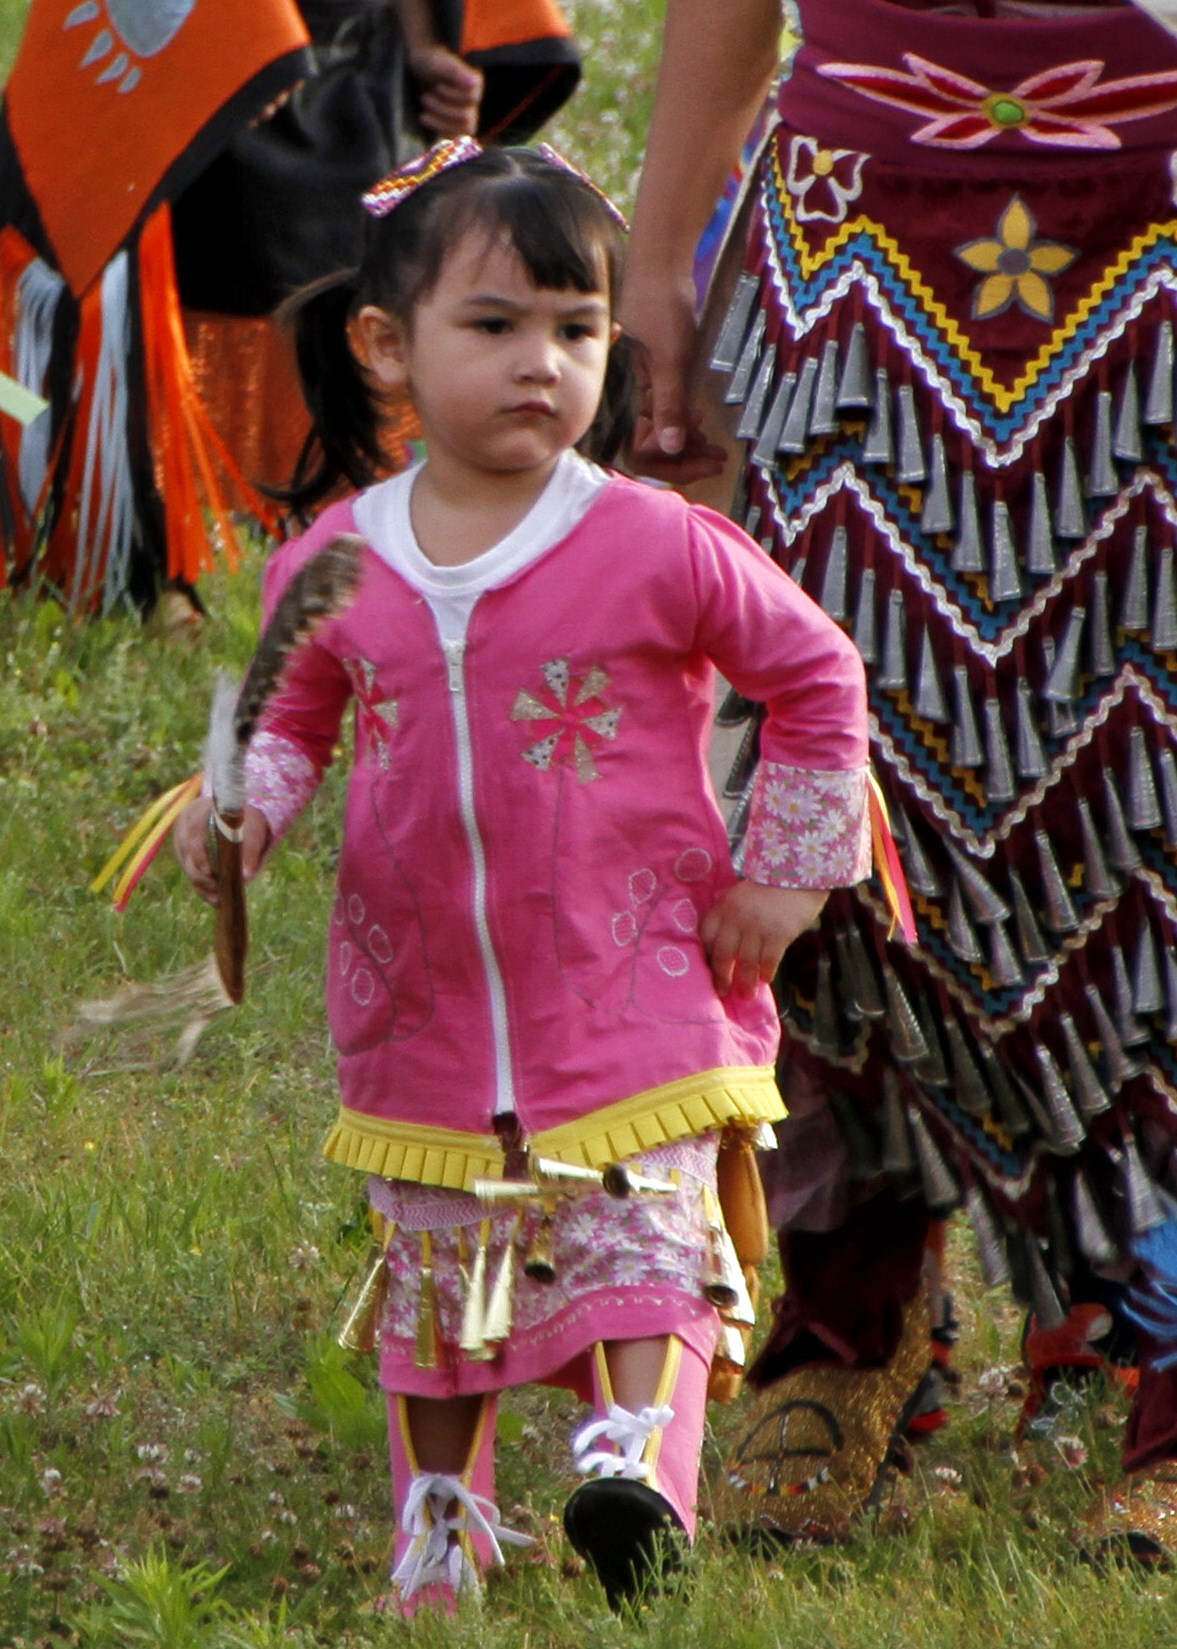 A young Ojibwe girl enjoys jingle-dress dancing. Some dresses include upwards of 200 jingles. In years past, the metal cones were often made from lids of snuff cans. (courtesy Dean Hall/Lakeland Times)